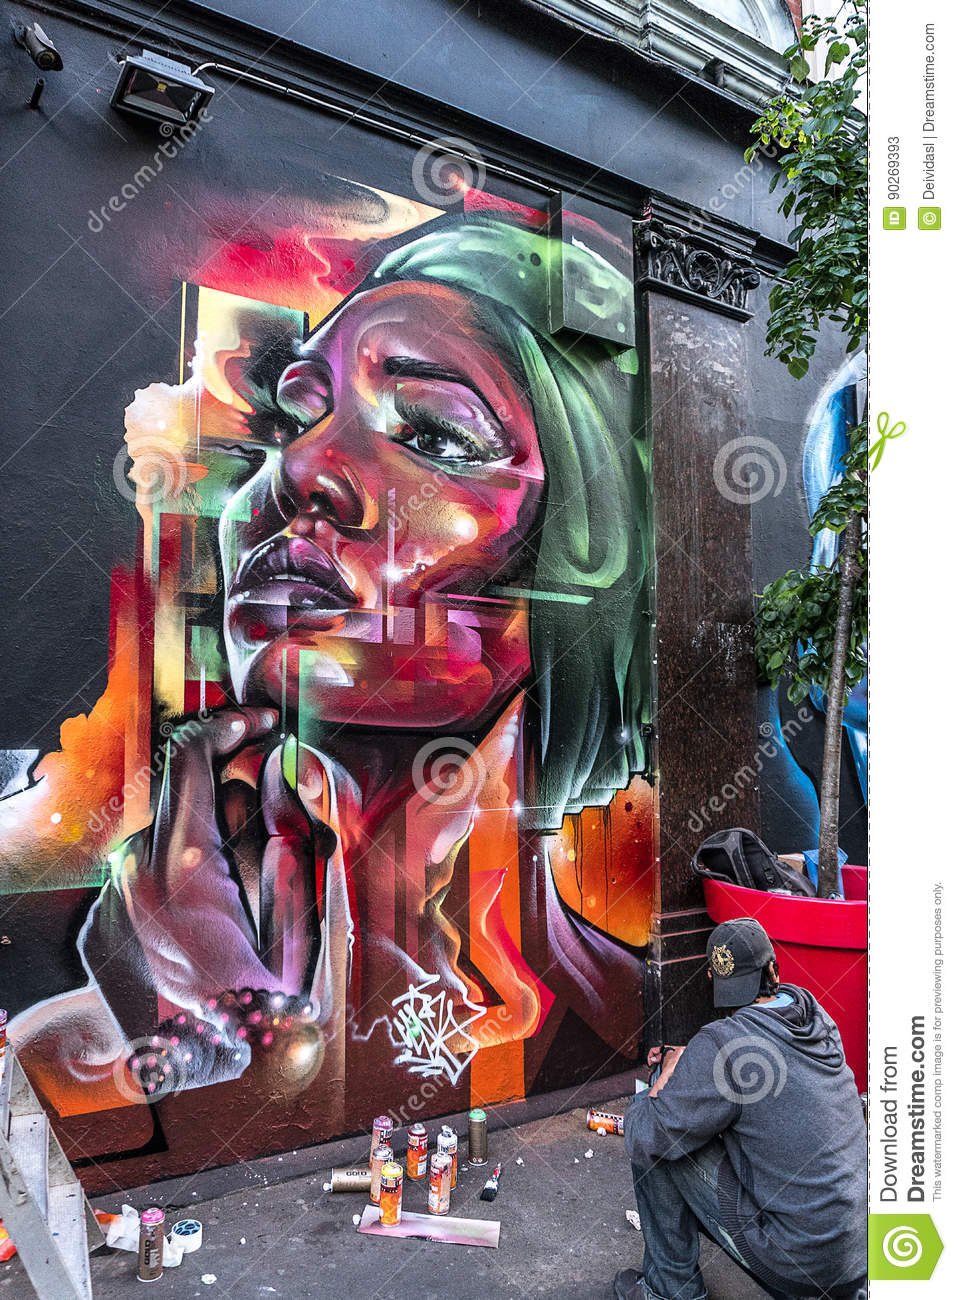 Bright colorful female face graffiti